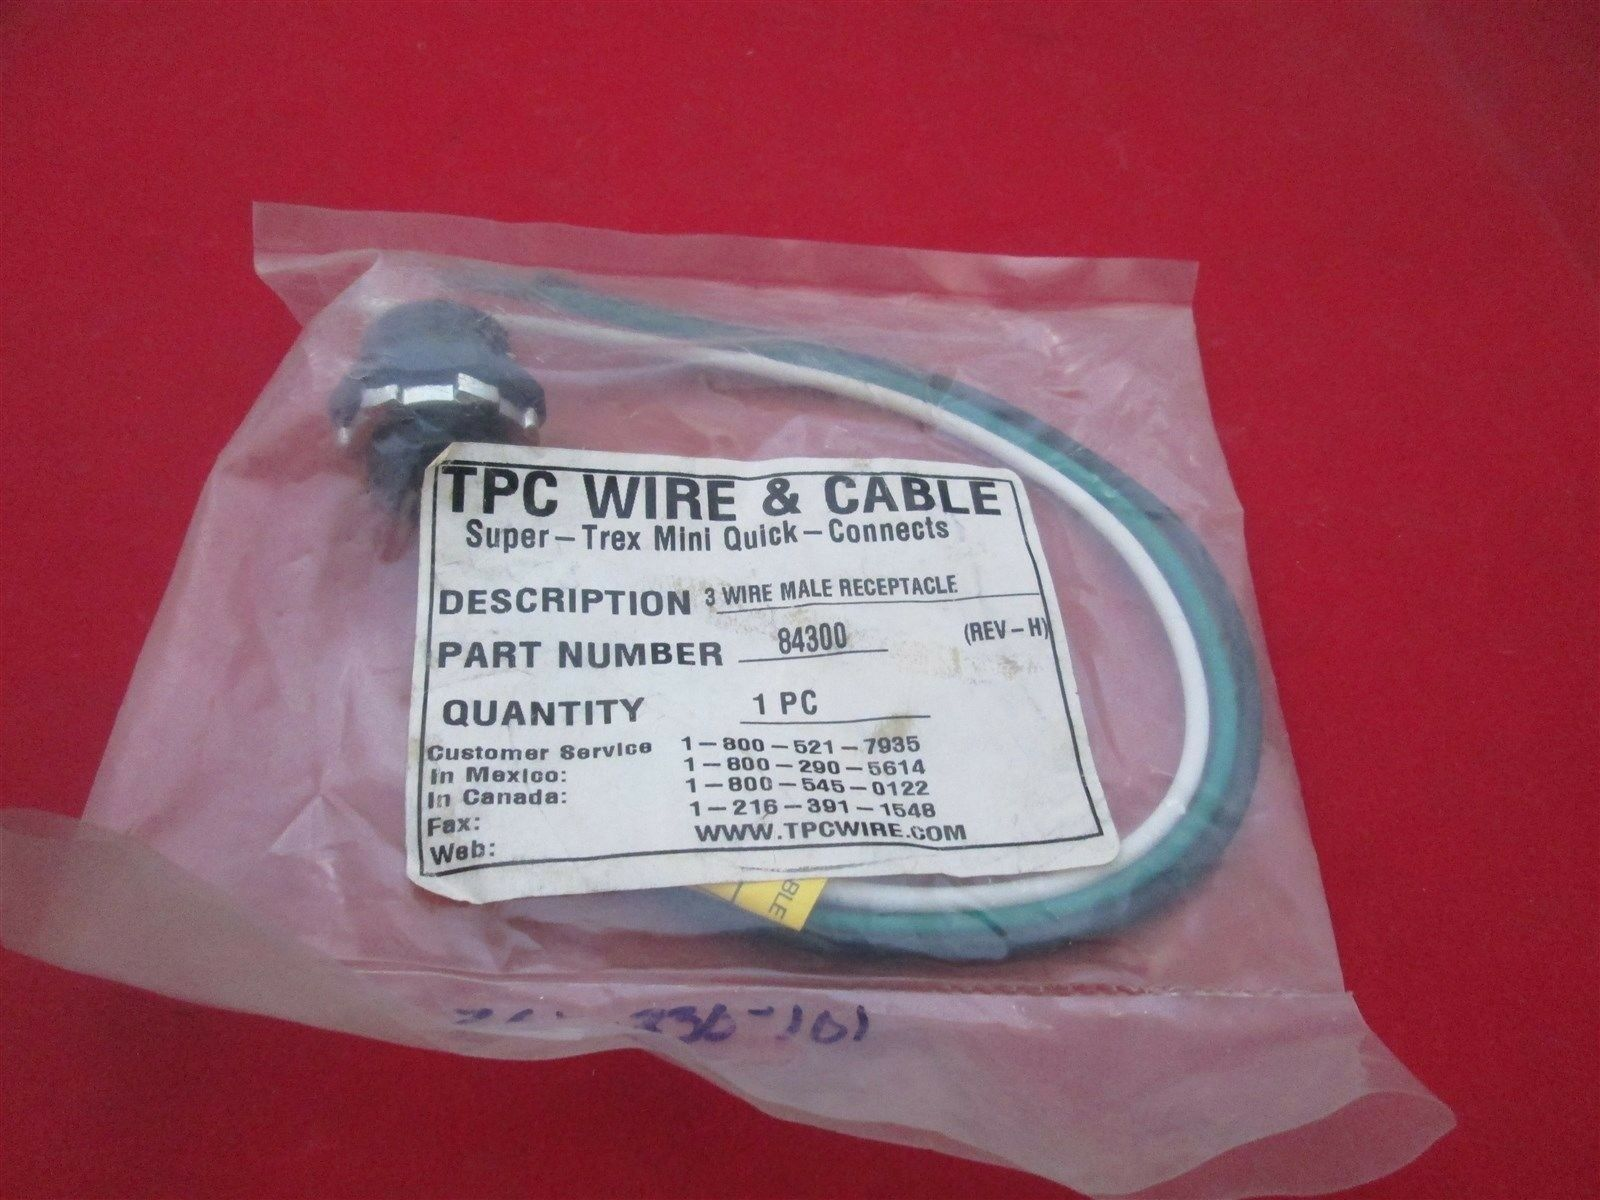 TPC Wire & Cable 3 Wire Male Receptacle 84300